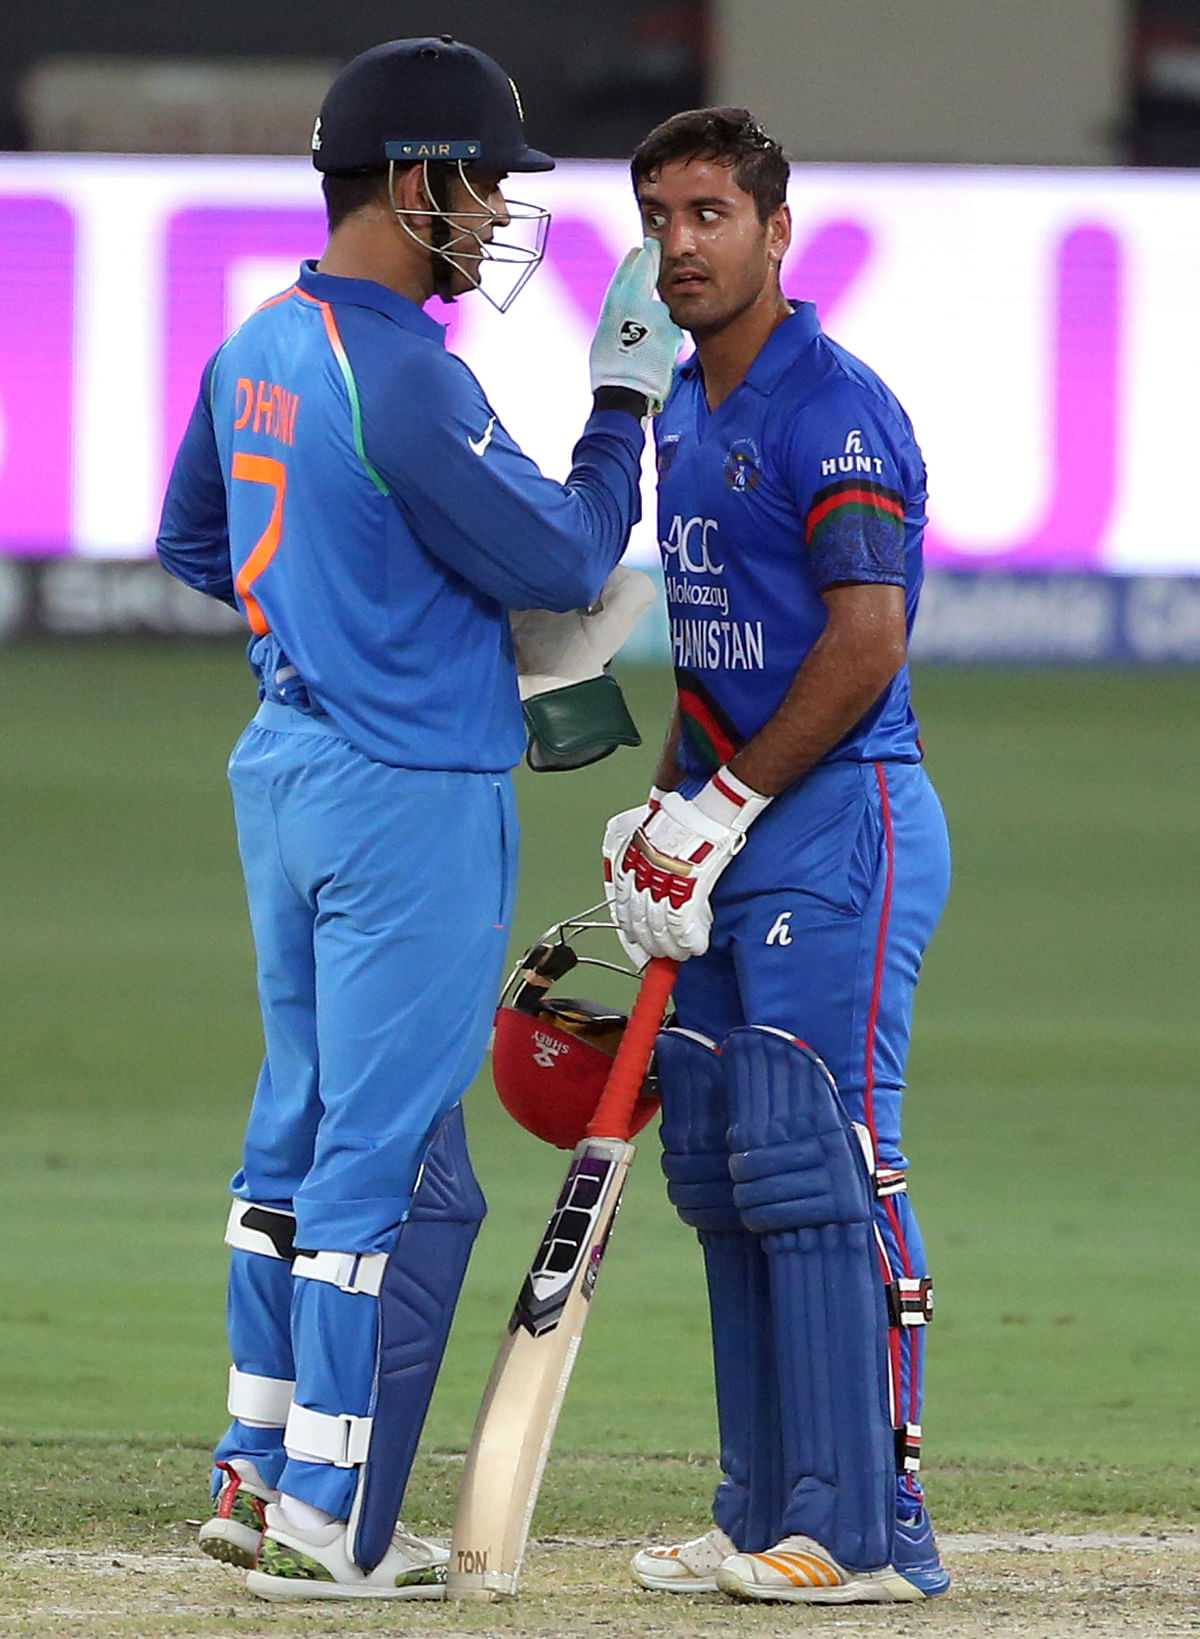 India's Mahendra Singh Dhoni, left, checks the eye of Afghanistan's Najibullah Zadran during the one day international cricket match of Asia Cup between India and Afghanistan in Dubai.